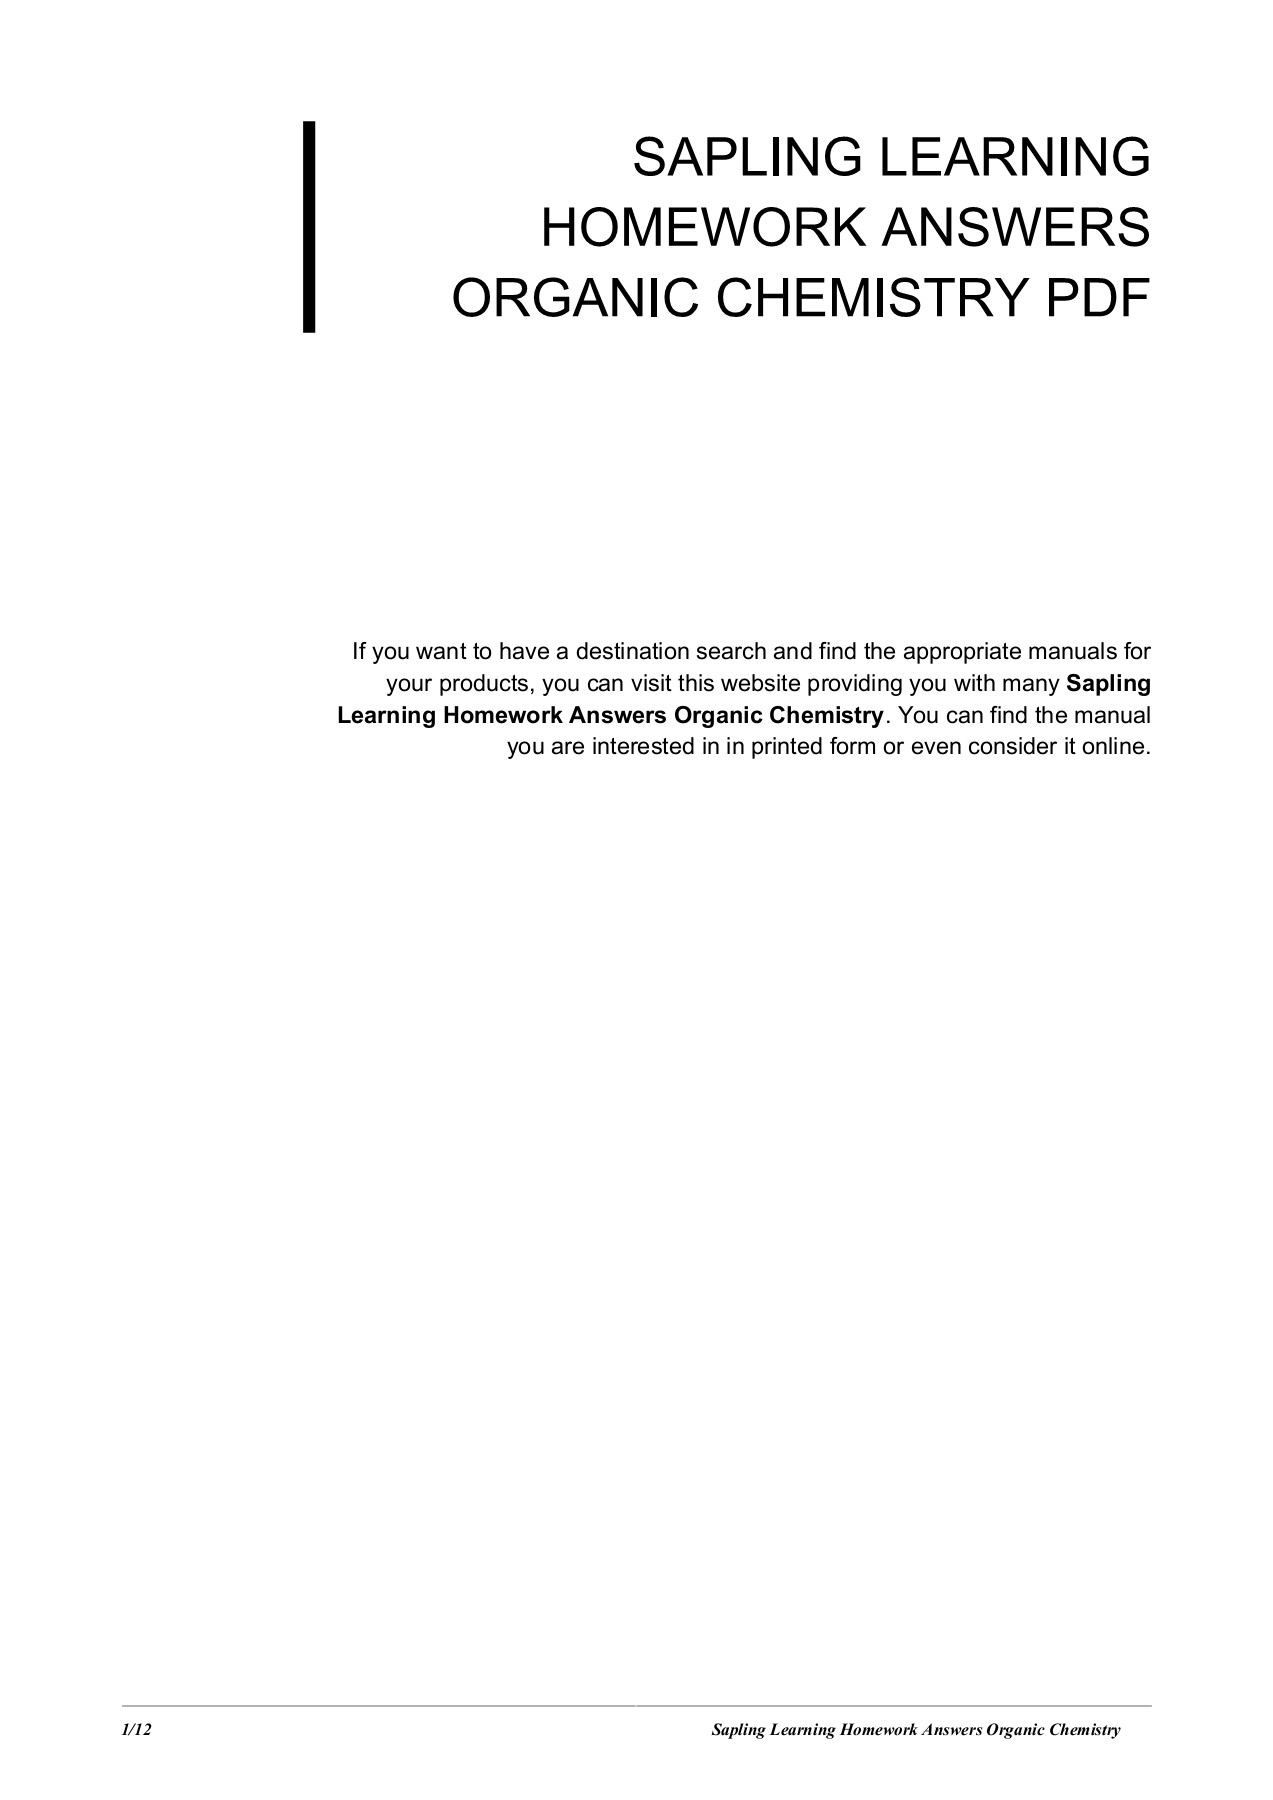 Sapling Learning Homework Answers Organic Chemistry